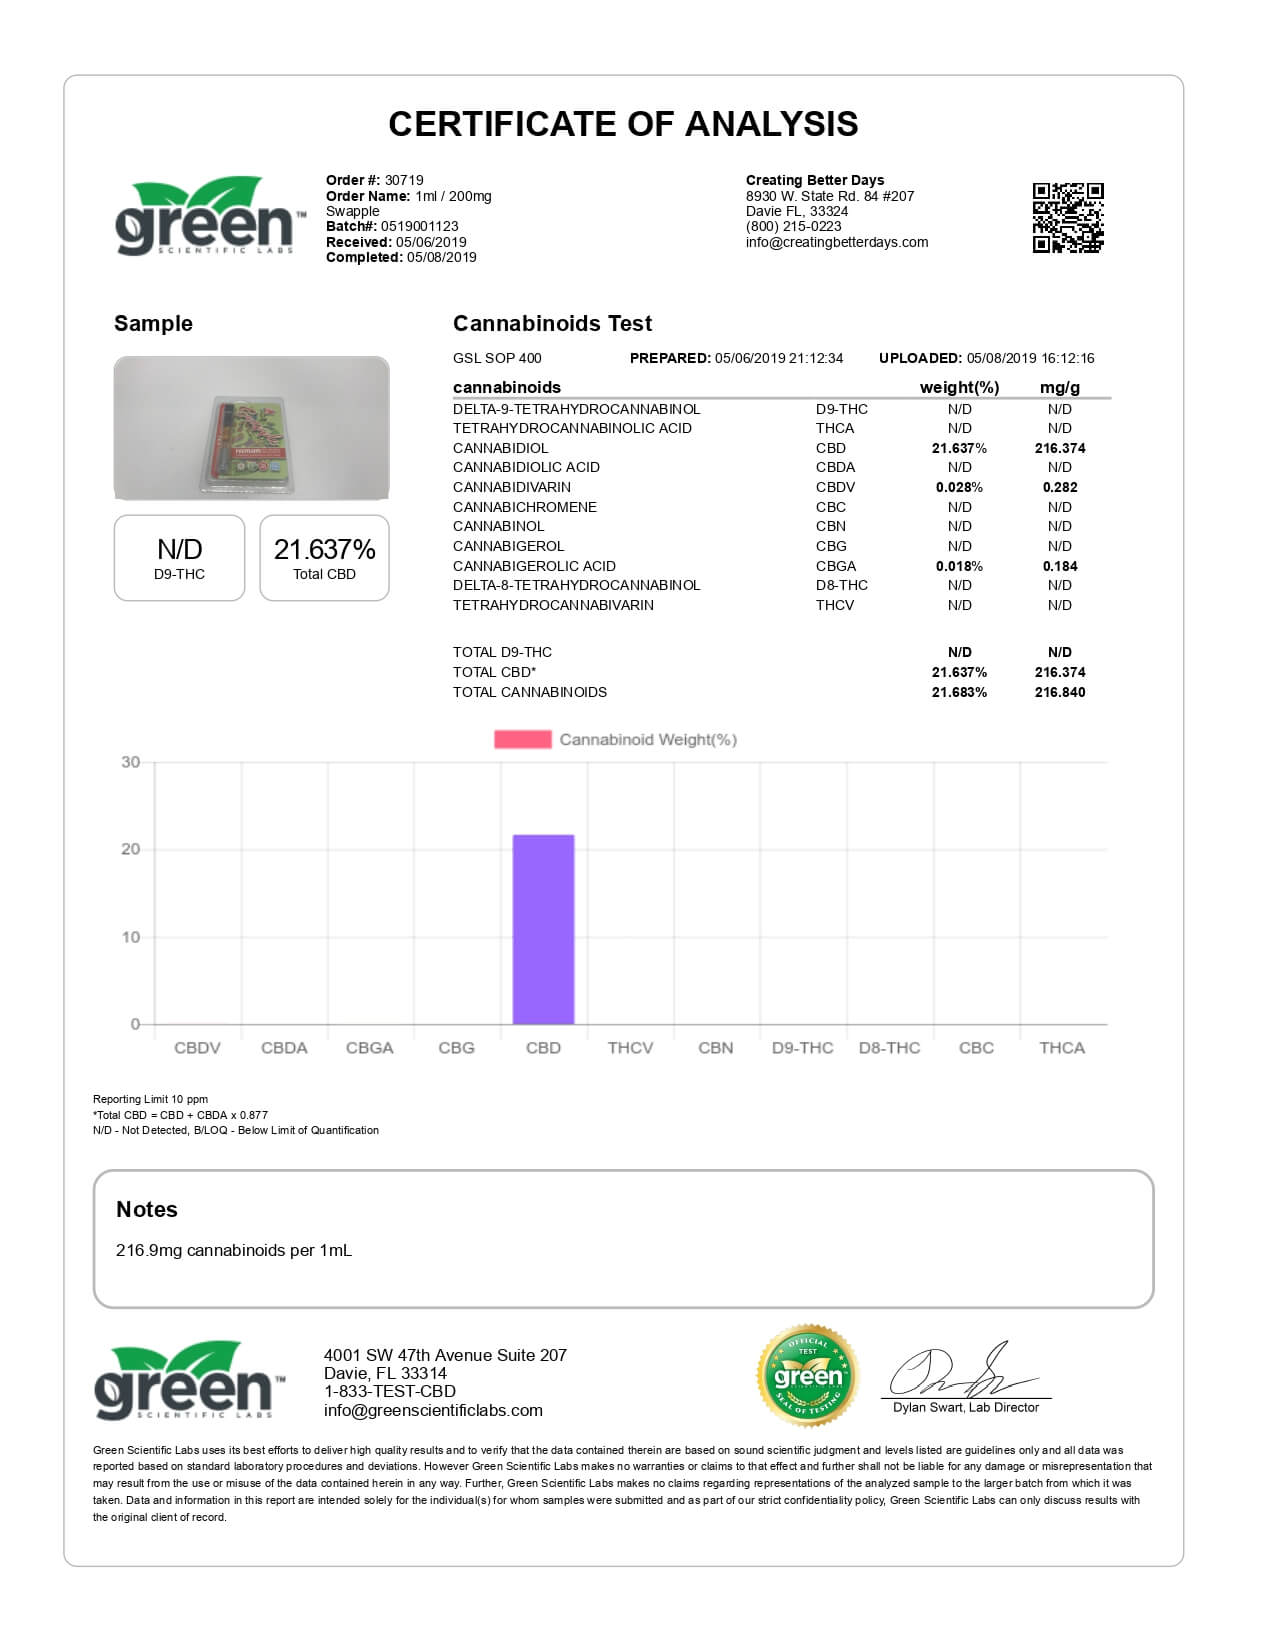 Creating Better Days CBD Cartridge Swapple 200mg Lab Report